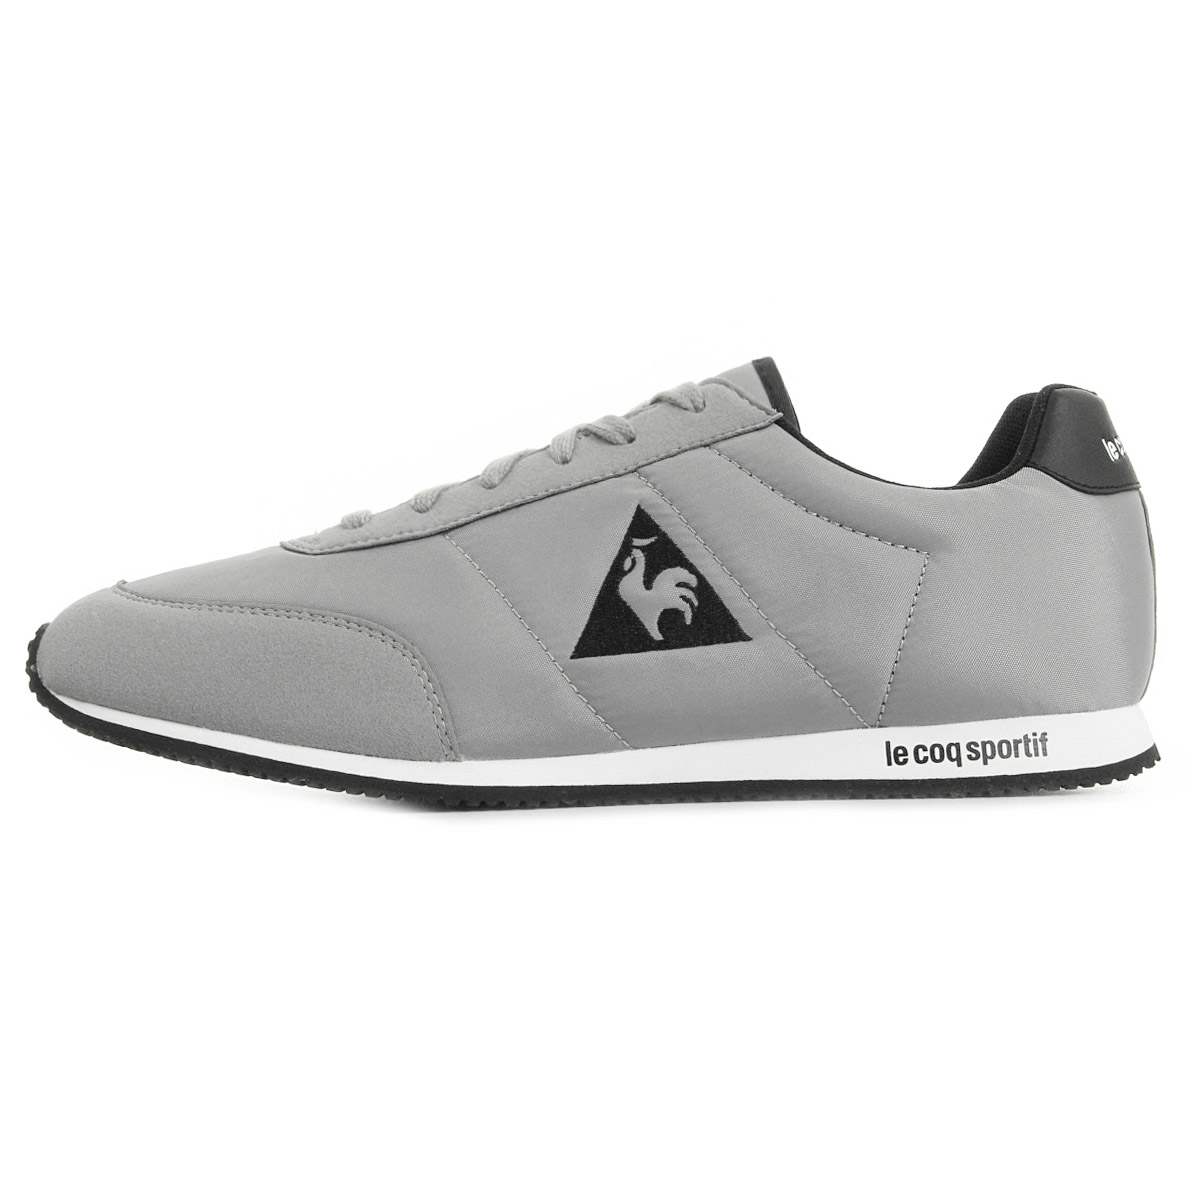 le coq sportif men racerone classic sneaker grey men 39 s shoes gym shoe new ebay. Black Bedroom Furniture Sets. Home Design Ideas